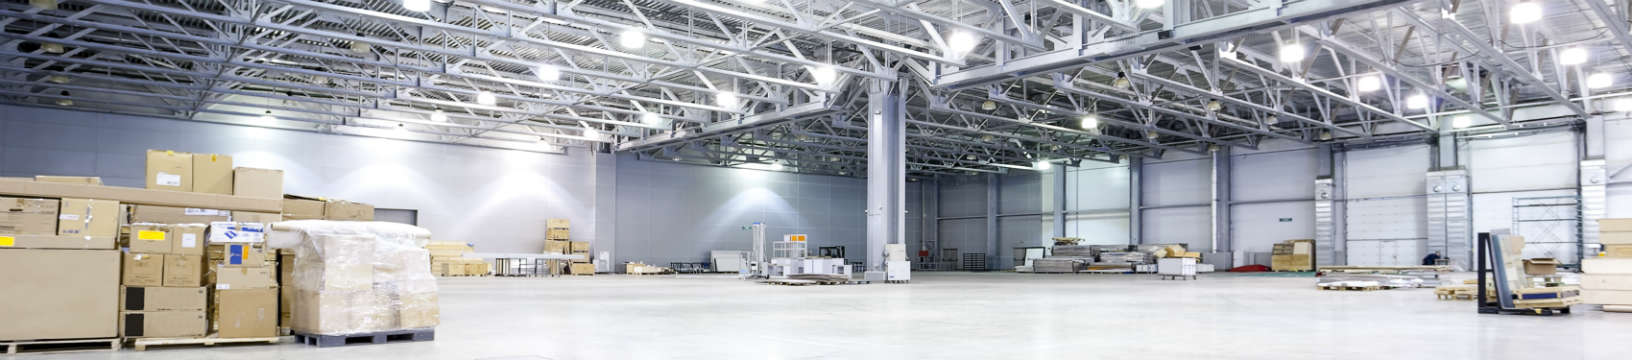 warehouse-heating-3